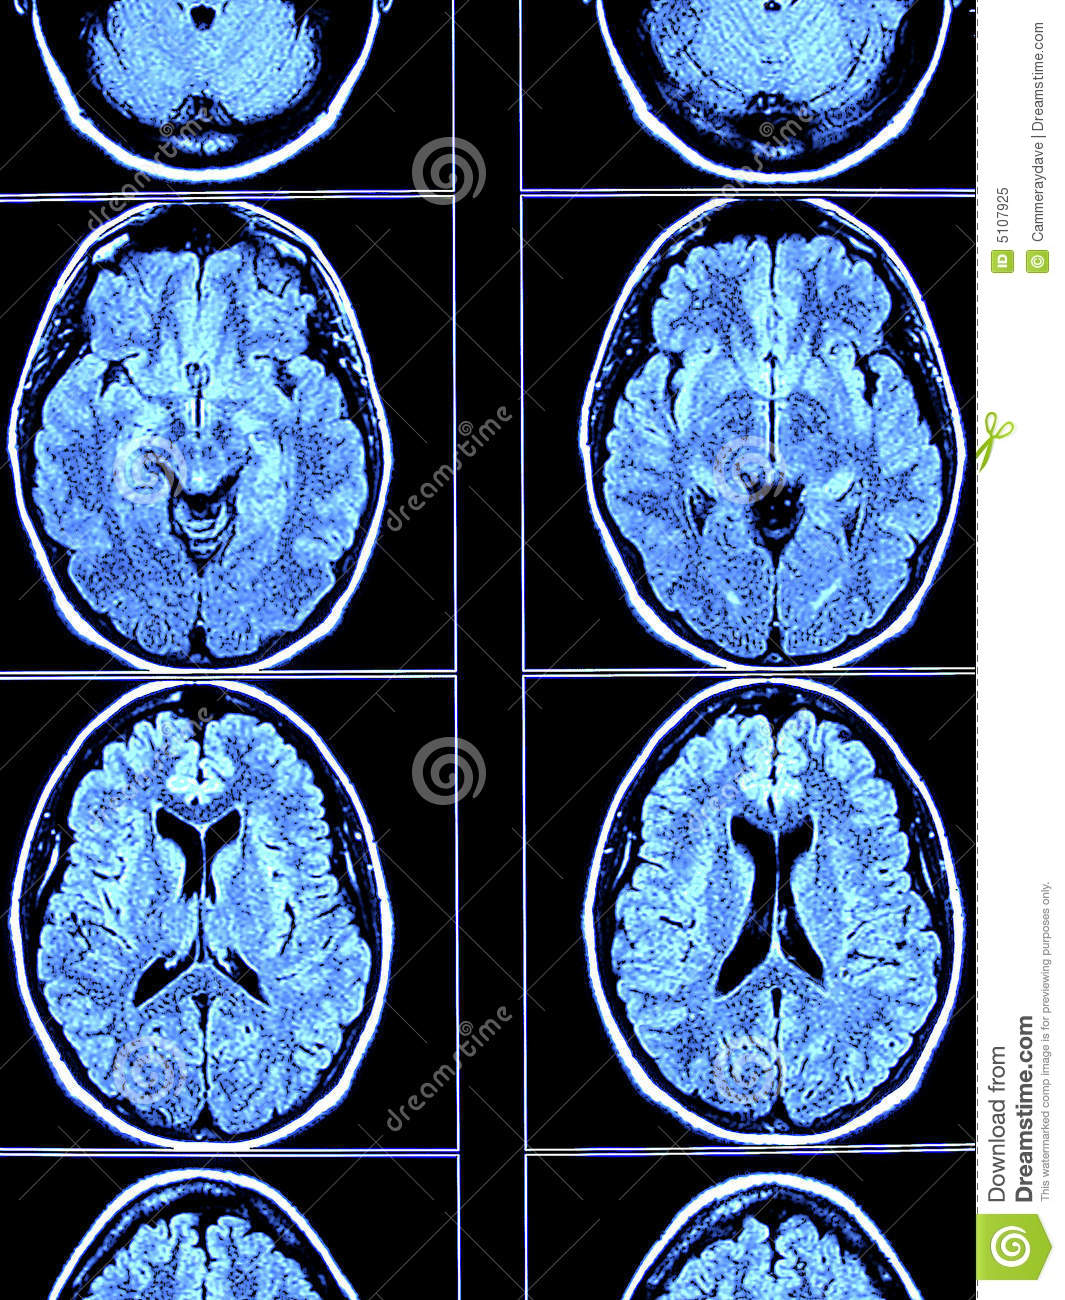 Brain CT Scan stock image. Image of skull, thought, bone - 5107925